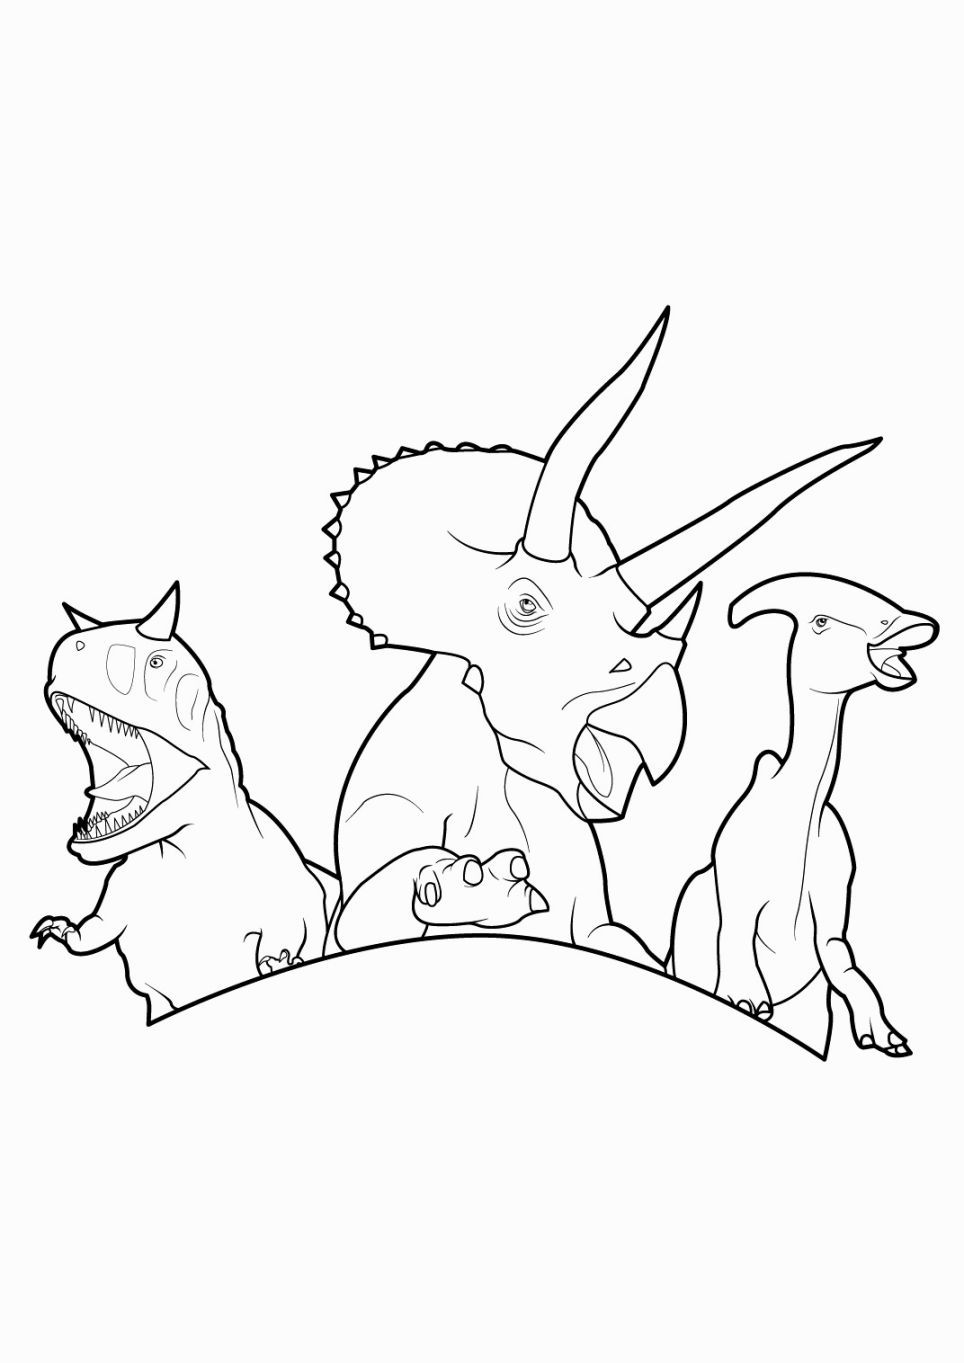 Free coloring pages dinosaurs - Dinosaur King Coloring Pages